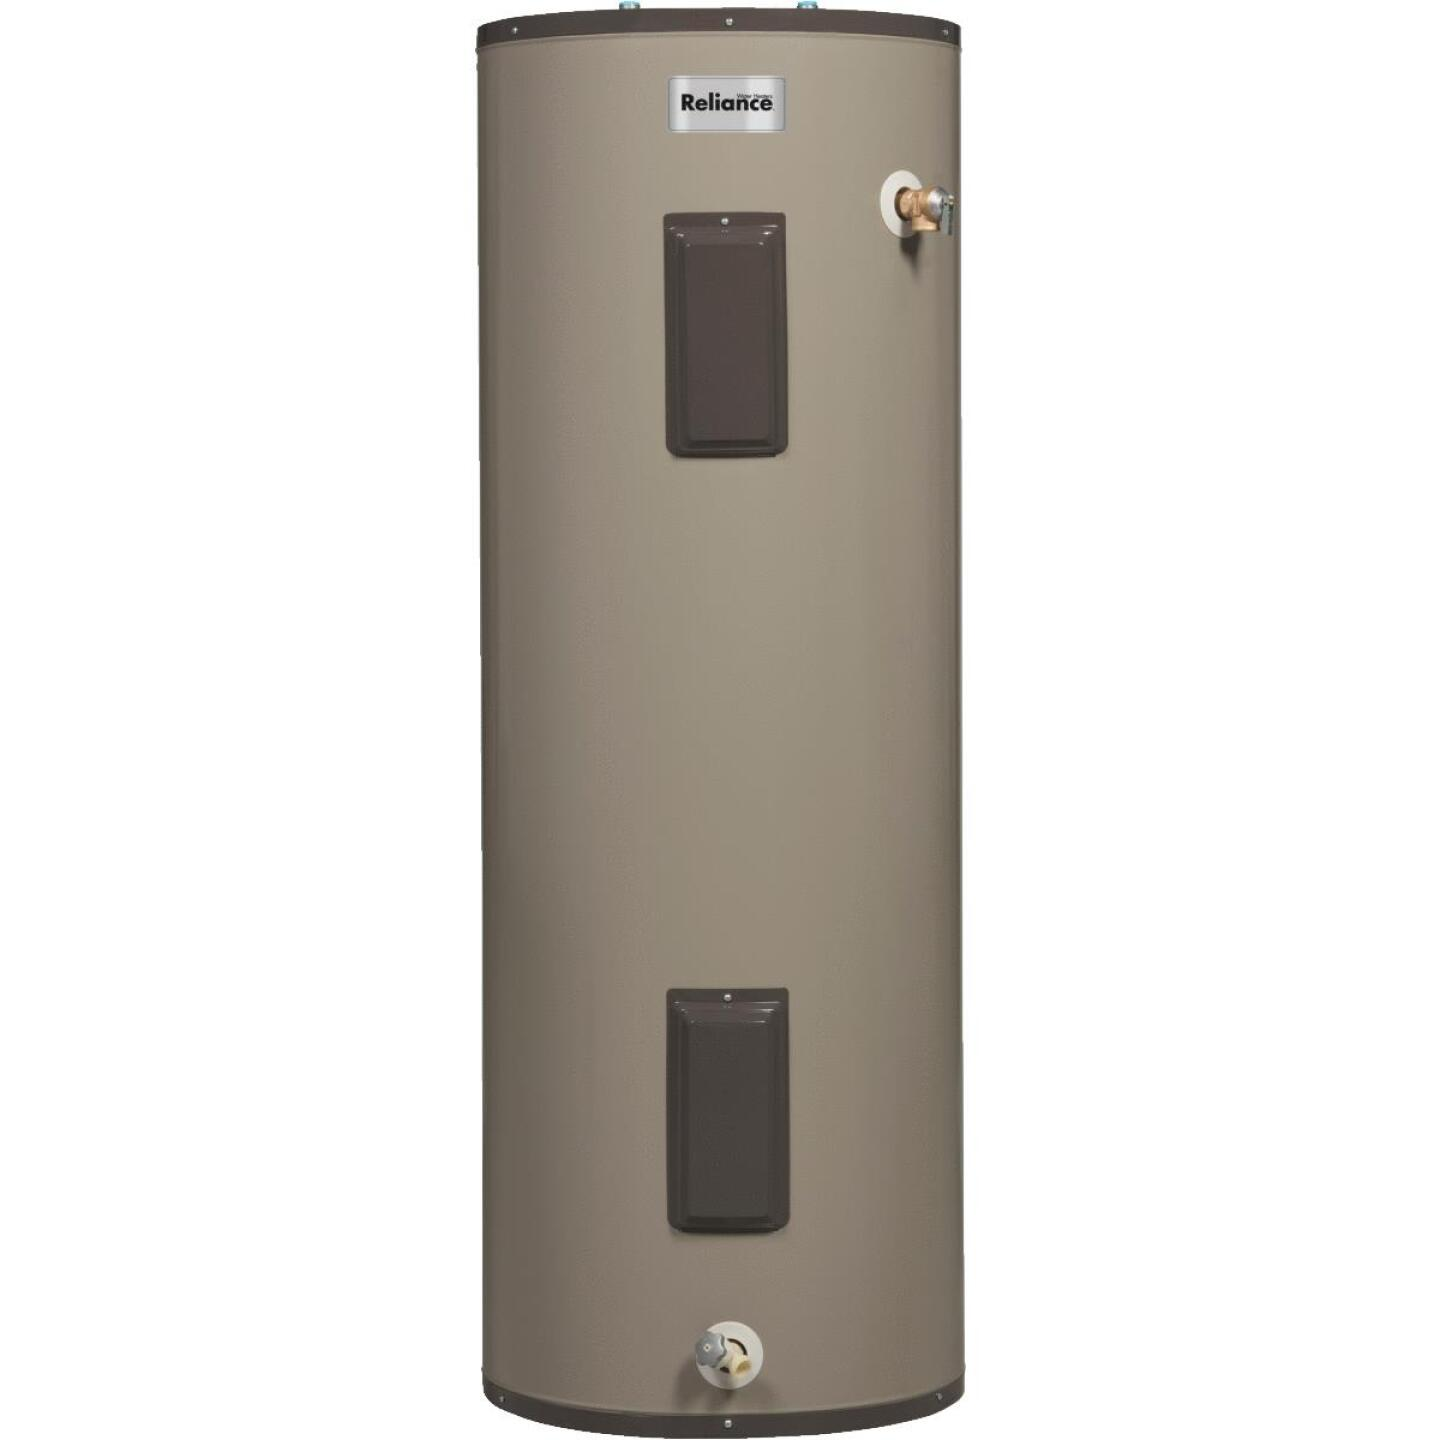 Reliance 50 Gal. Tall 9yr Self-Cleaning 4500/4500W Elements Electric Water Heater Image 1